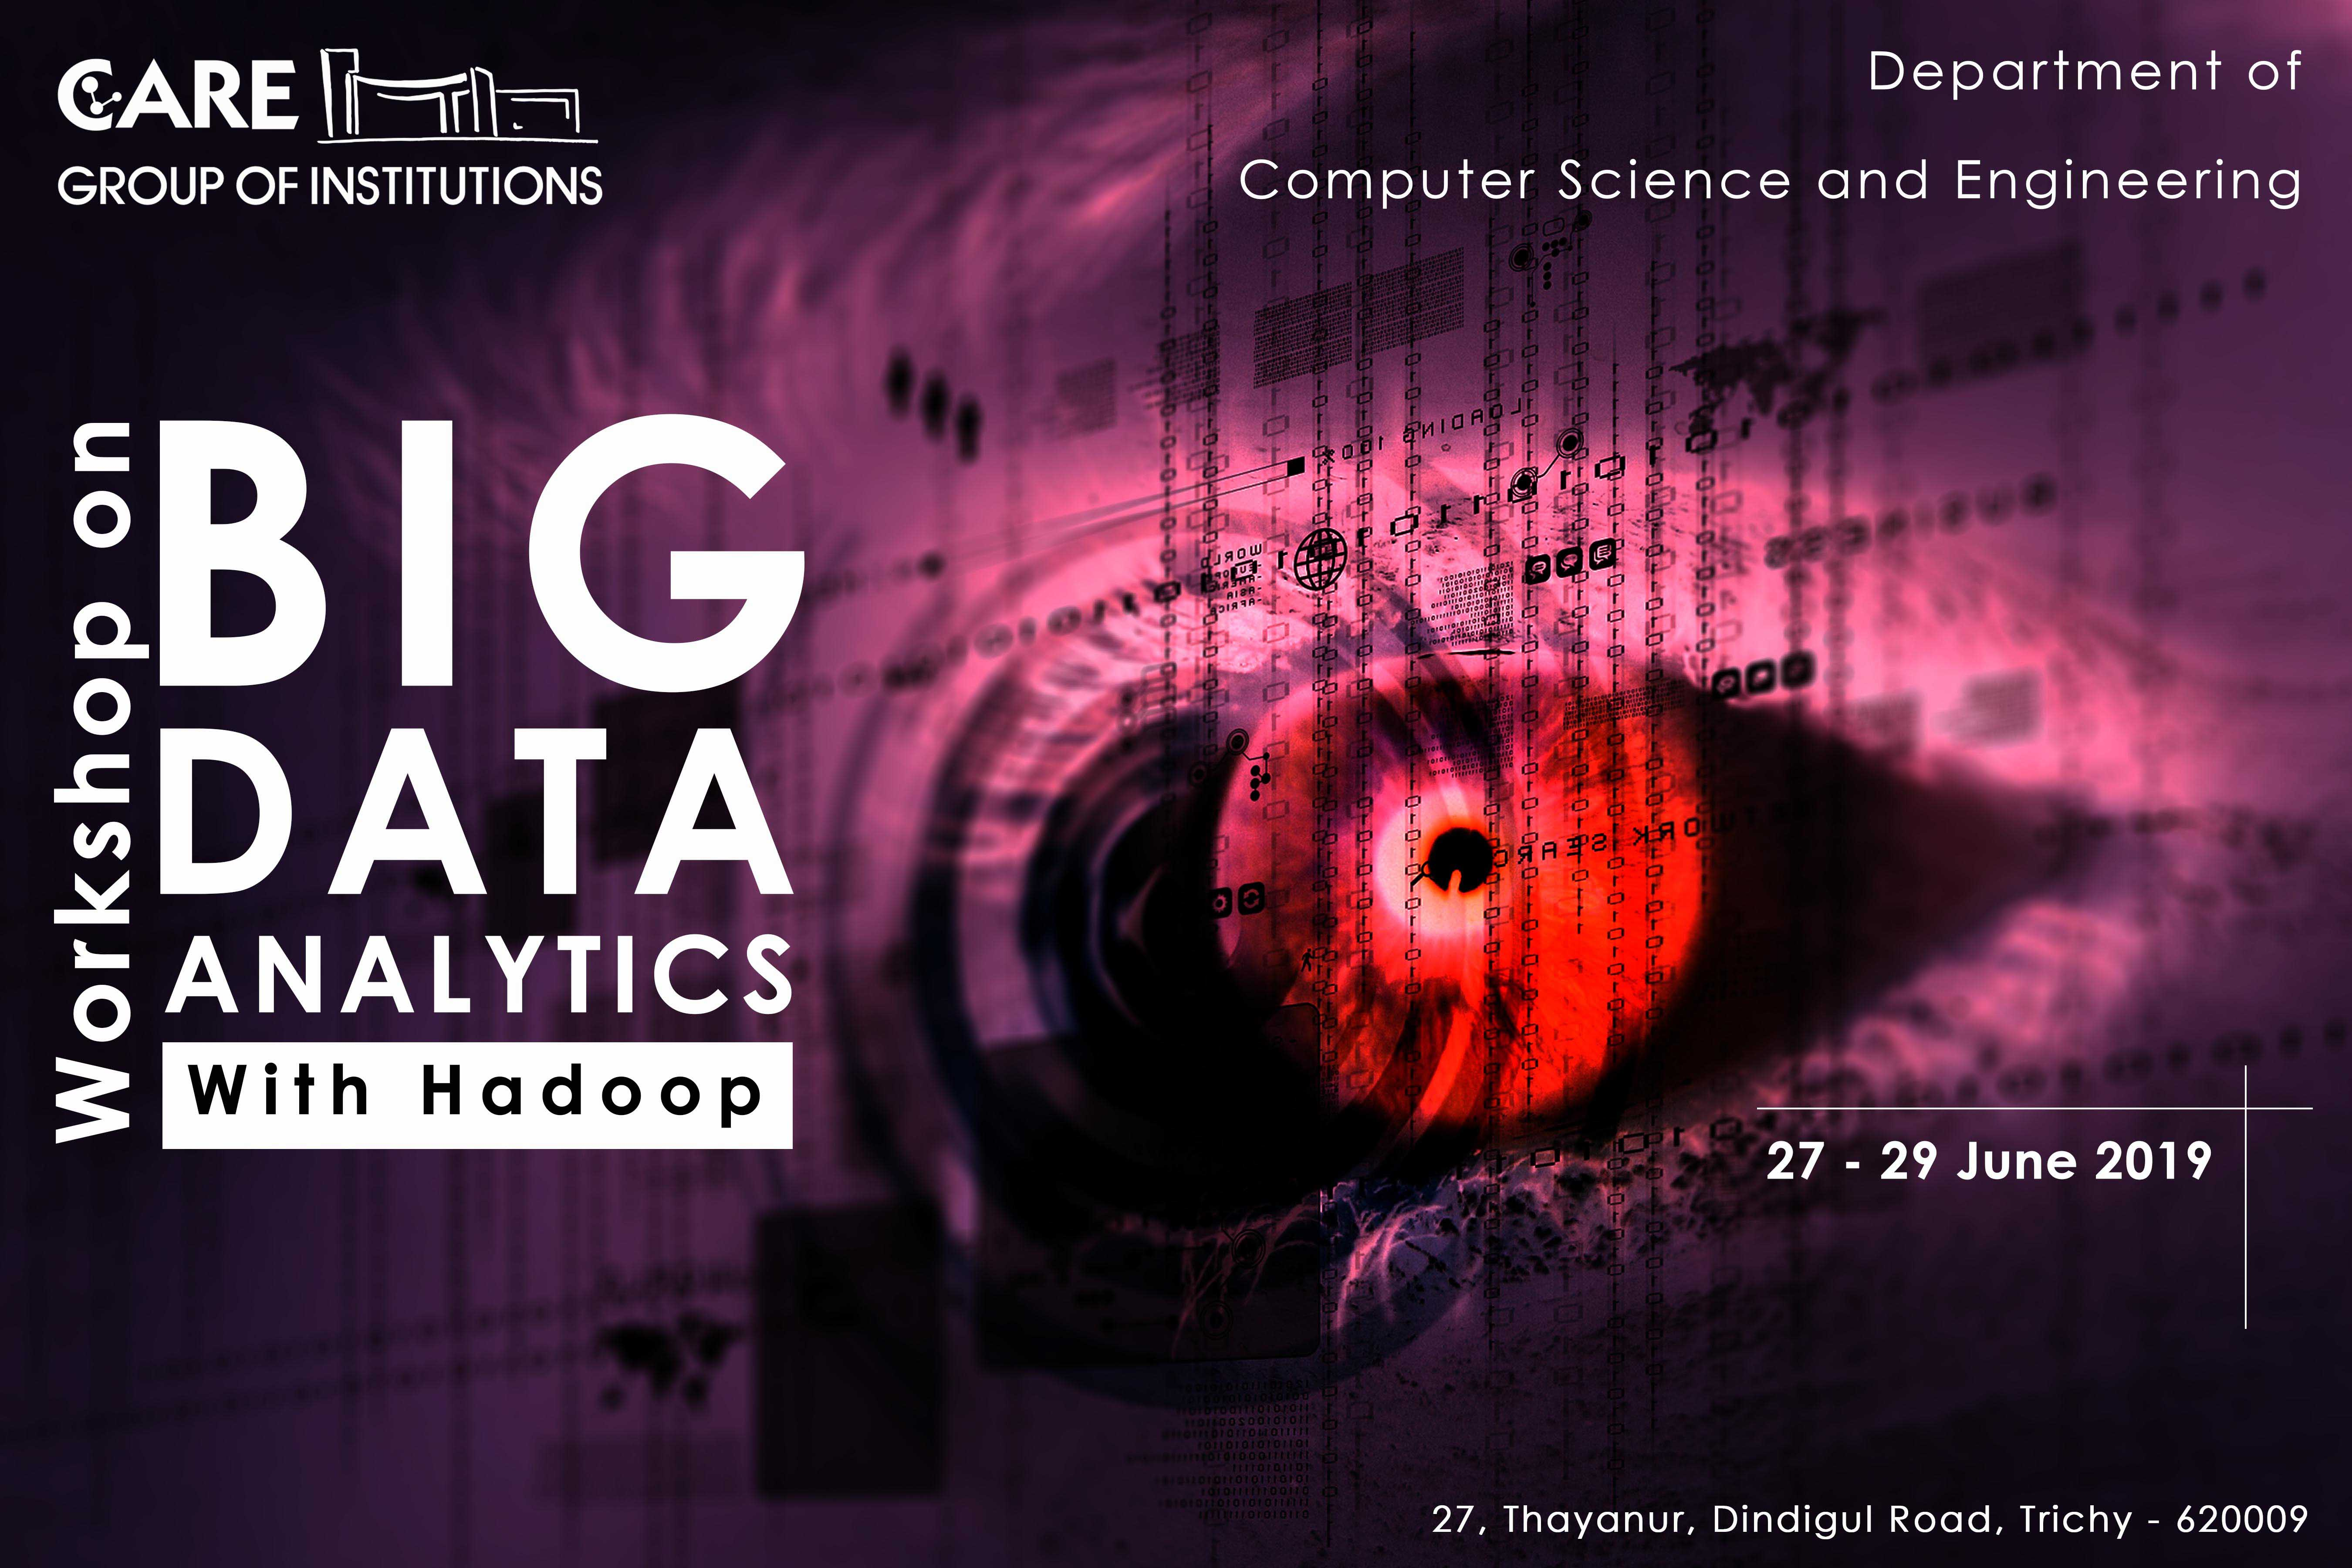 Workshop on Big Data Analytics(with Hadoop)